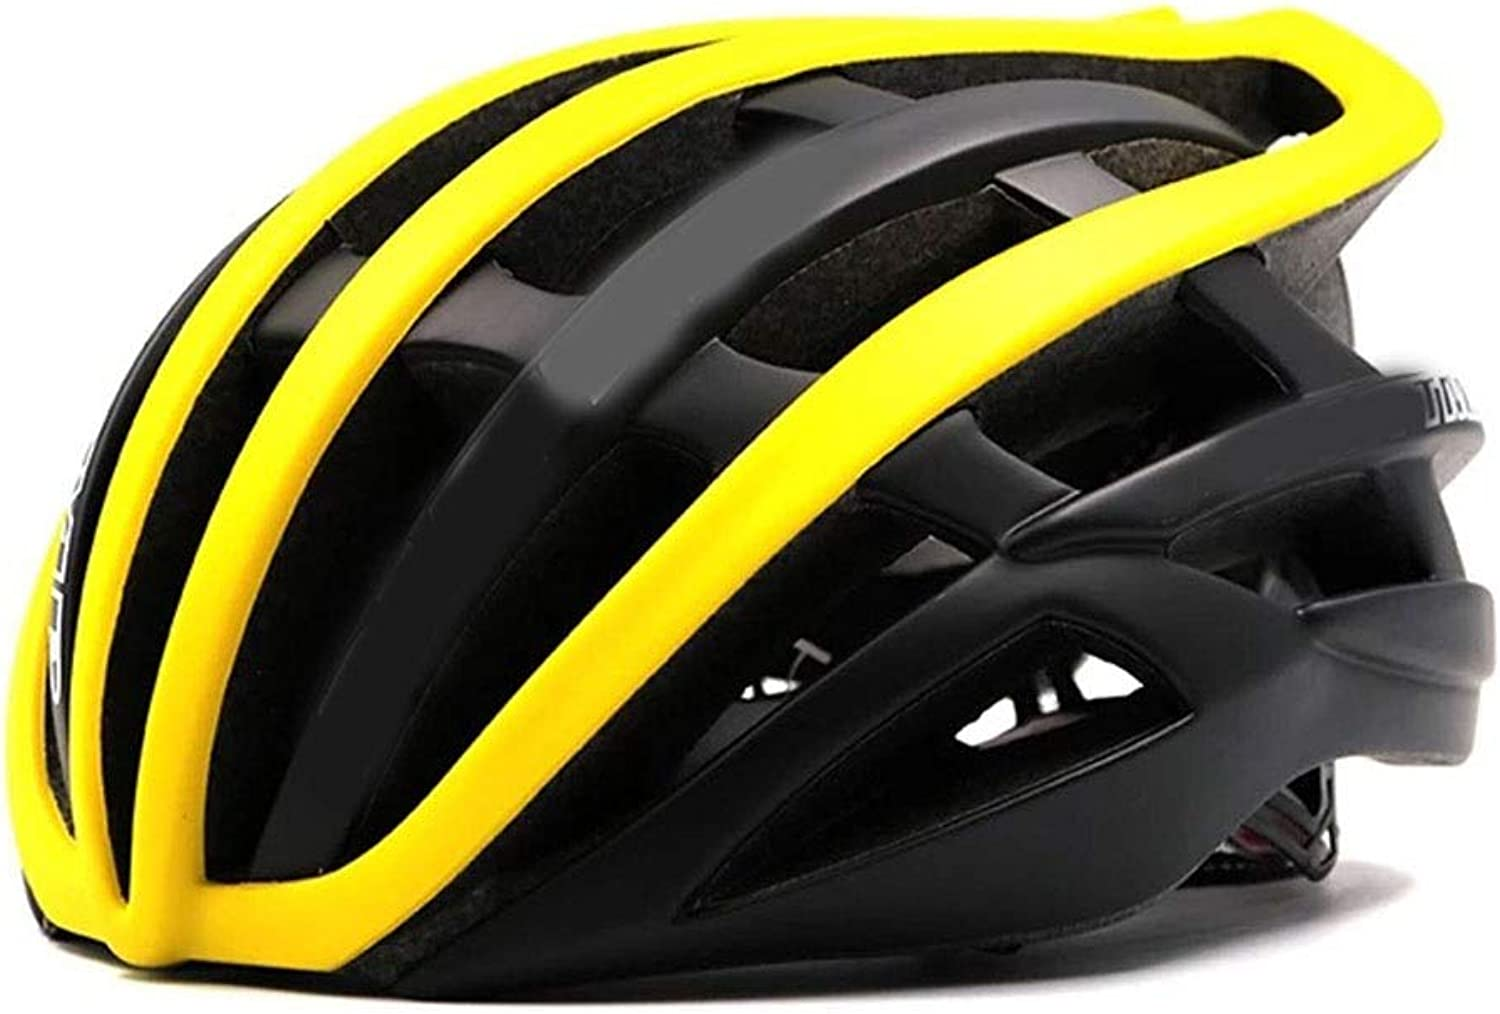 NICE' living hall Cycling Helmet Integrated Molding Bicycle Helmet Mountain Road Bike Helmet Ultra Light Riding Breathable Helmet Predection